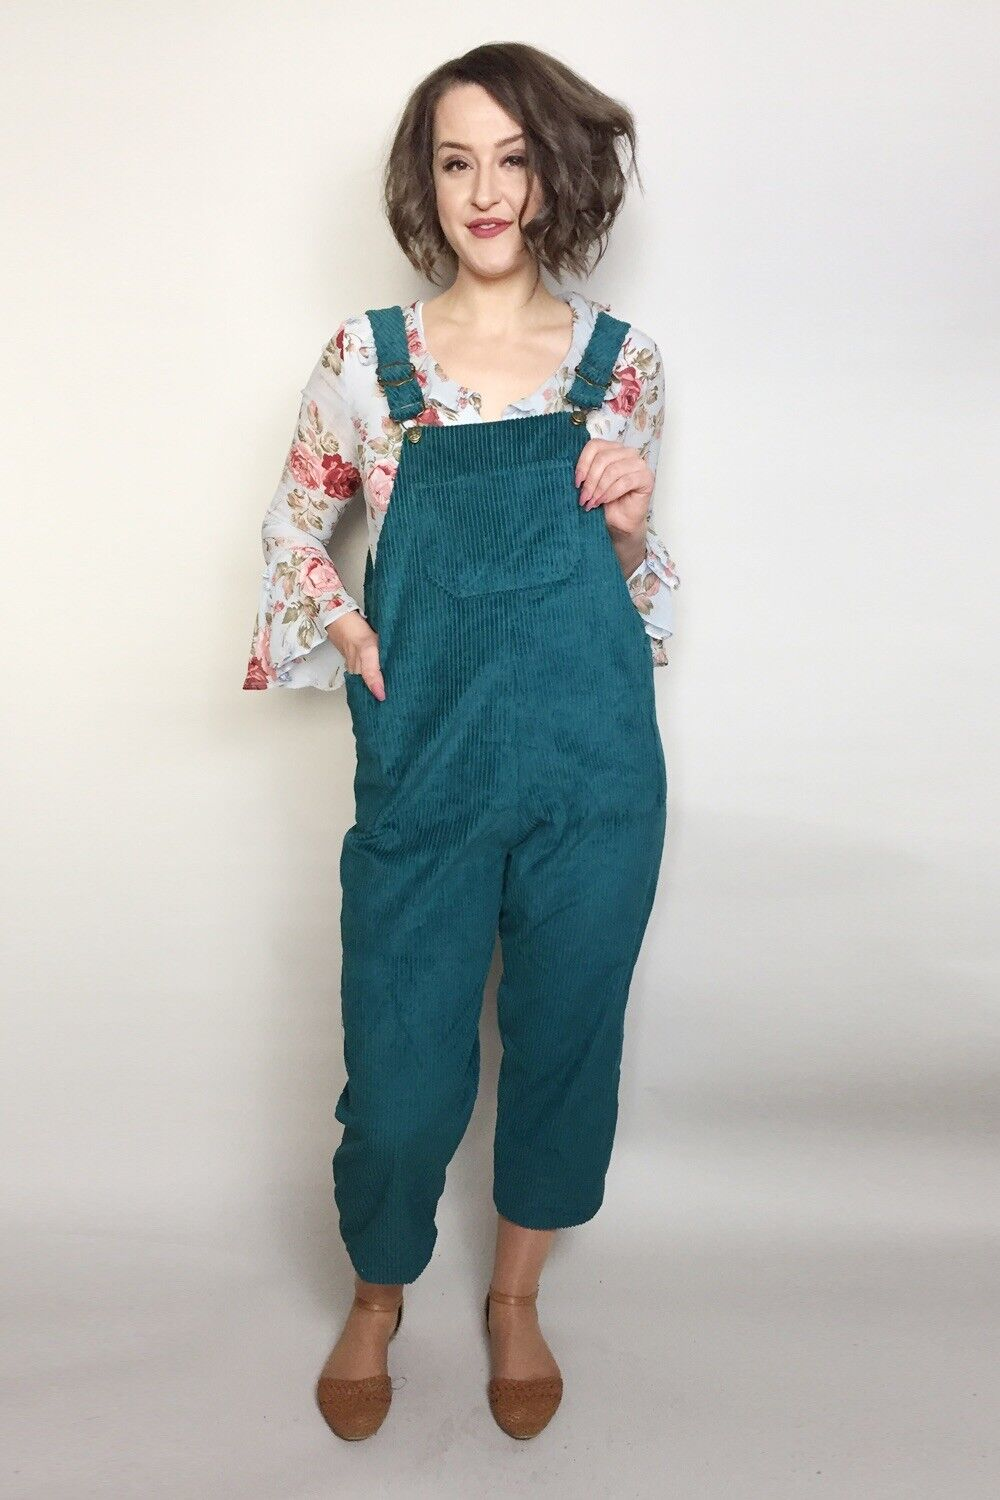 Handmade Forest Bottle Green  Corduroy  Relaxed Fit Dungarees